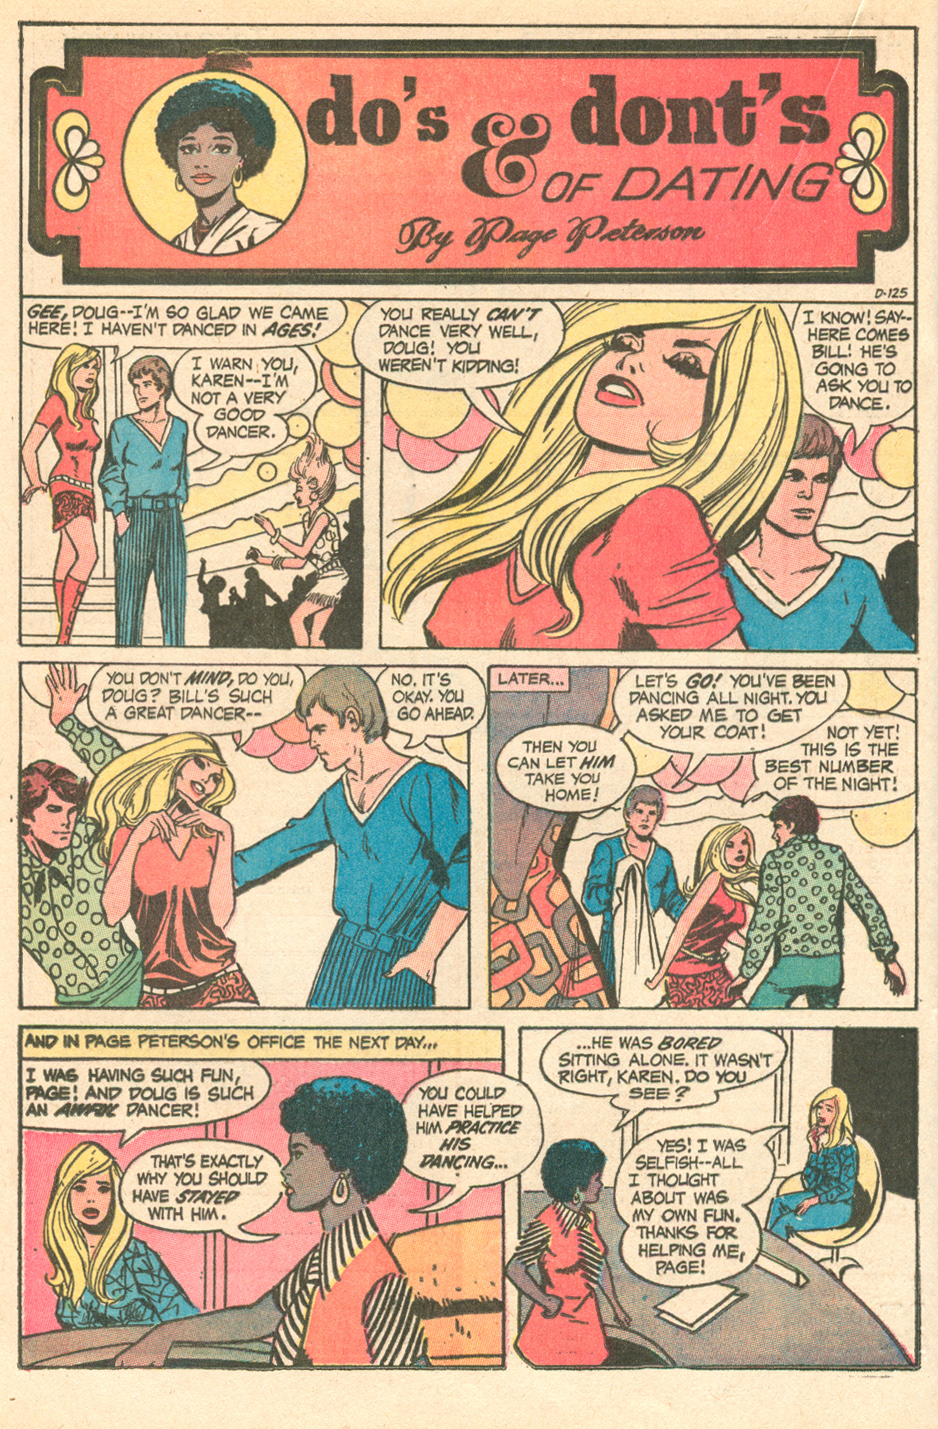 """Do's & Dont's of Dating by Page Peterson"" Pencils:  Steve Englehart , Inks: Vince Colletta  Young Romance  #174 (September 1971)"